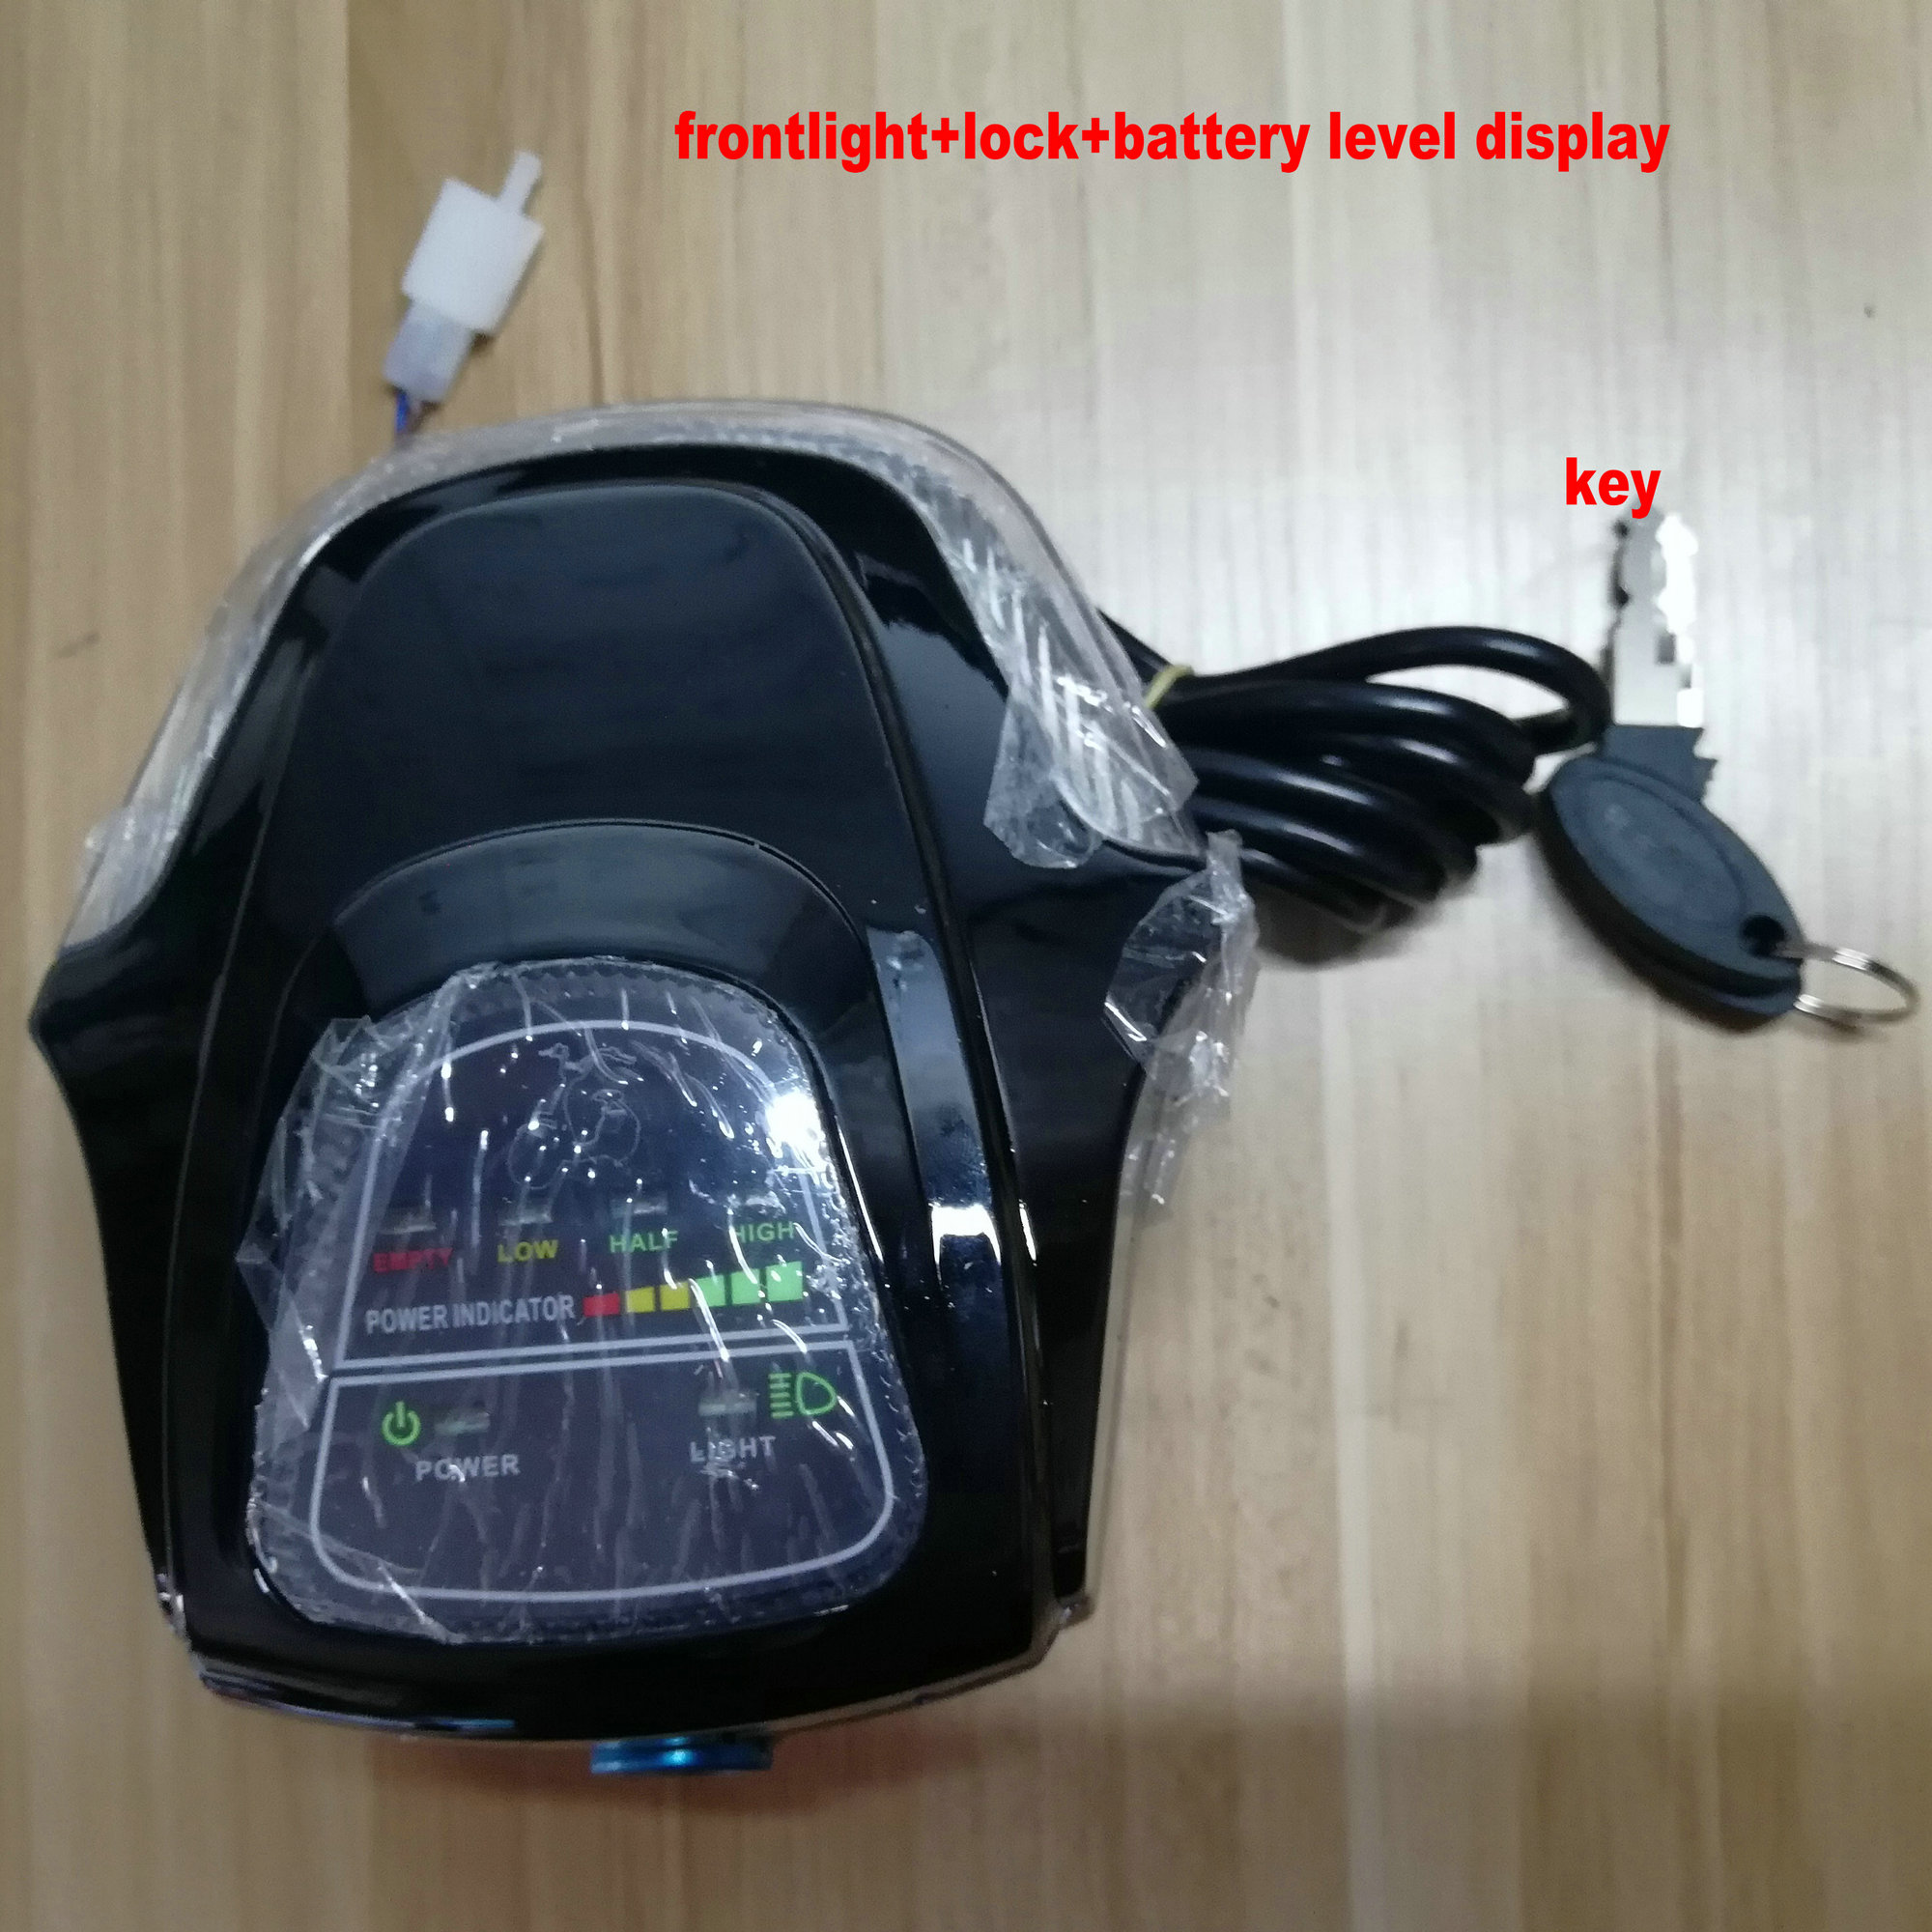 Sensible 60v/48v Battery Level/power Indicator+frontlight+bluetooth+lock/key For Electric Bike Tricycle Mtb Scooter Diy Part